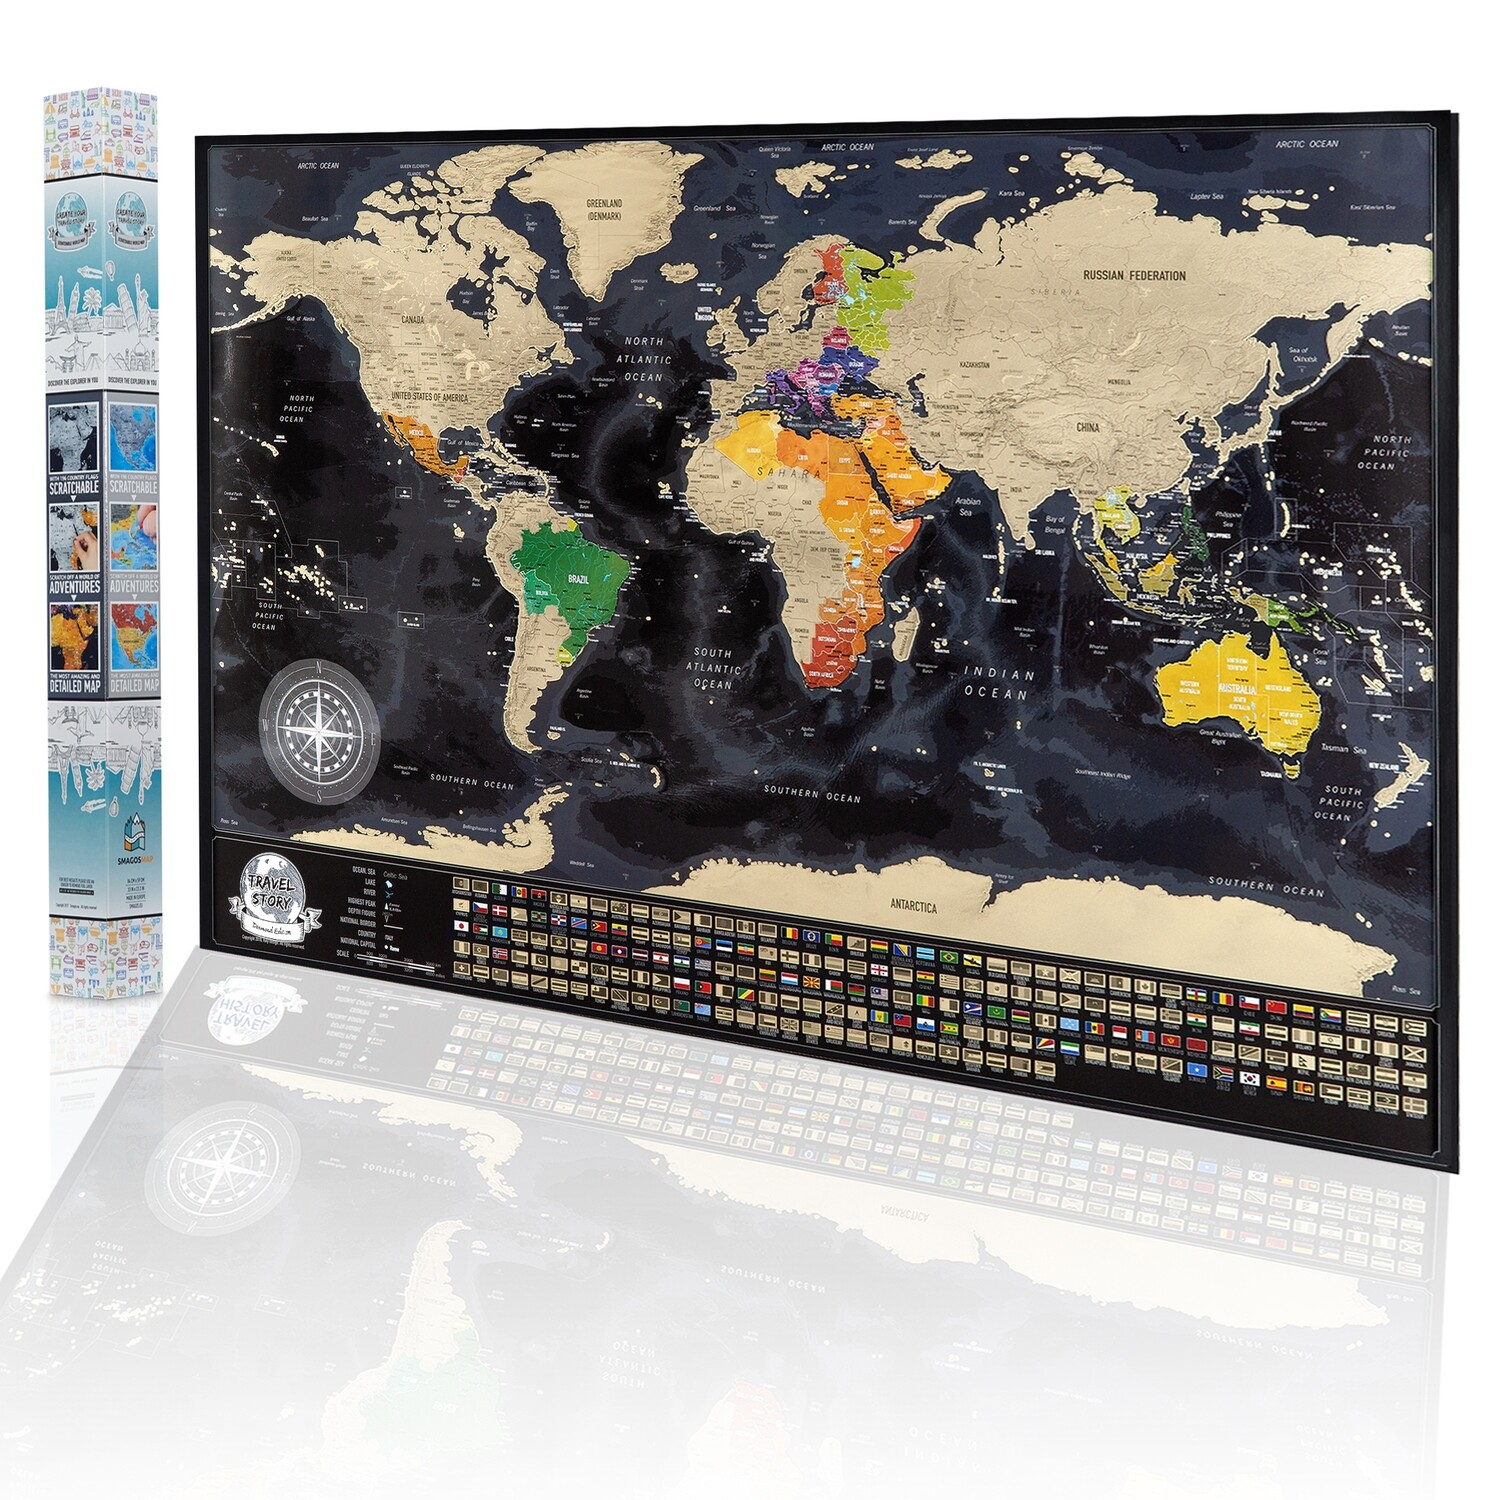 Best Birthday Gift for Friends - Personalized Weddings Gift - NEW Scratch off World Map - Adventure Map with Flags - XXL Scratch Travel Map. Available Map with Frame